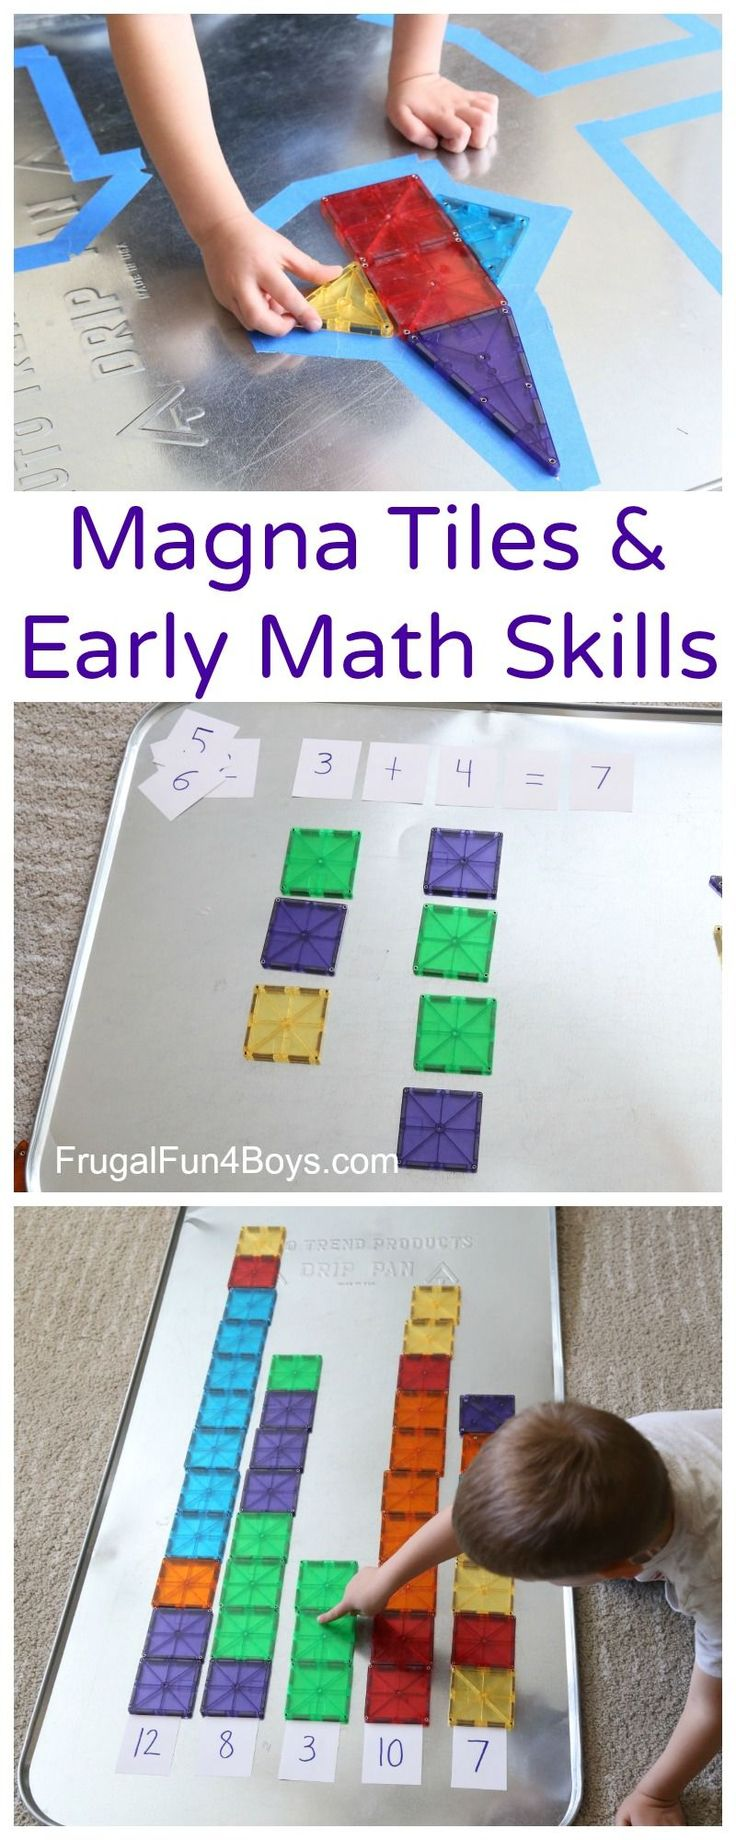 Where can you find cool and fun math games for various age groups?